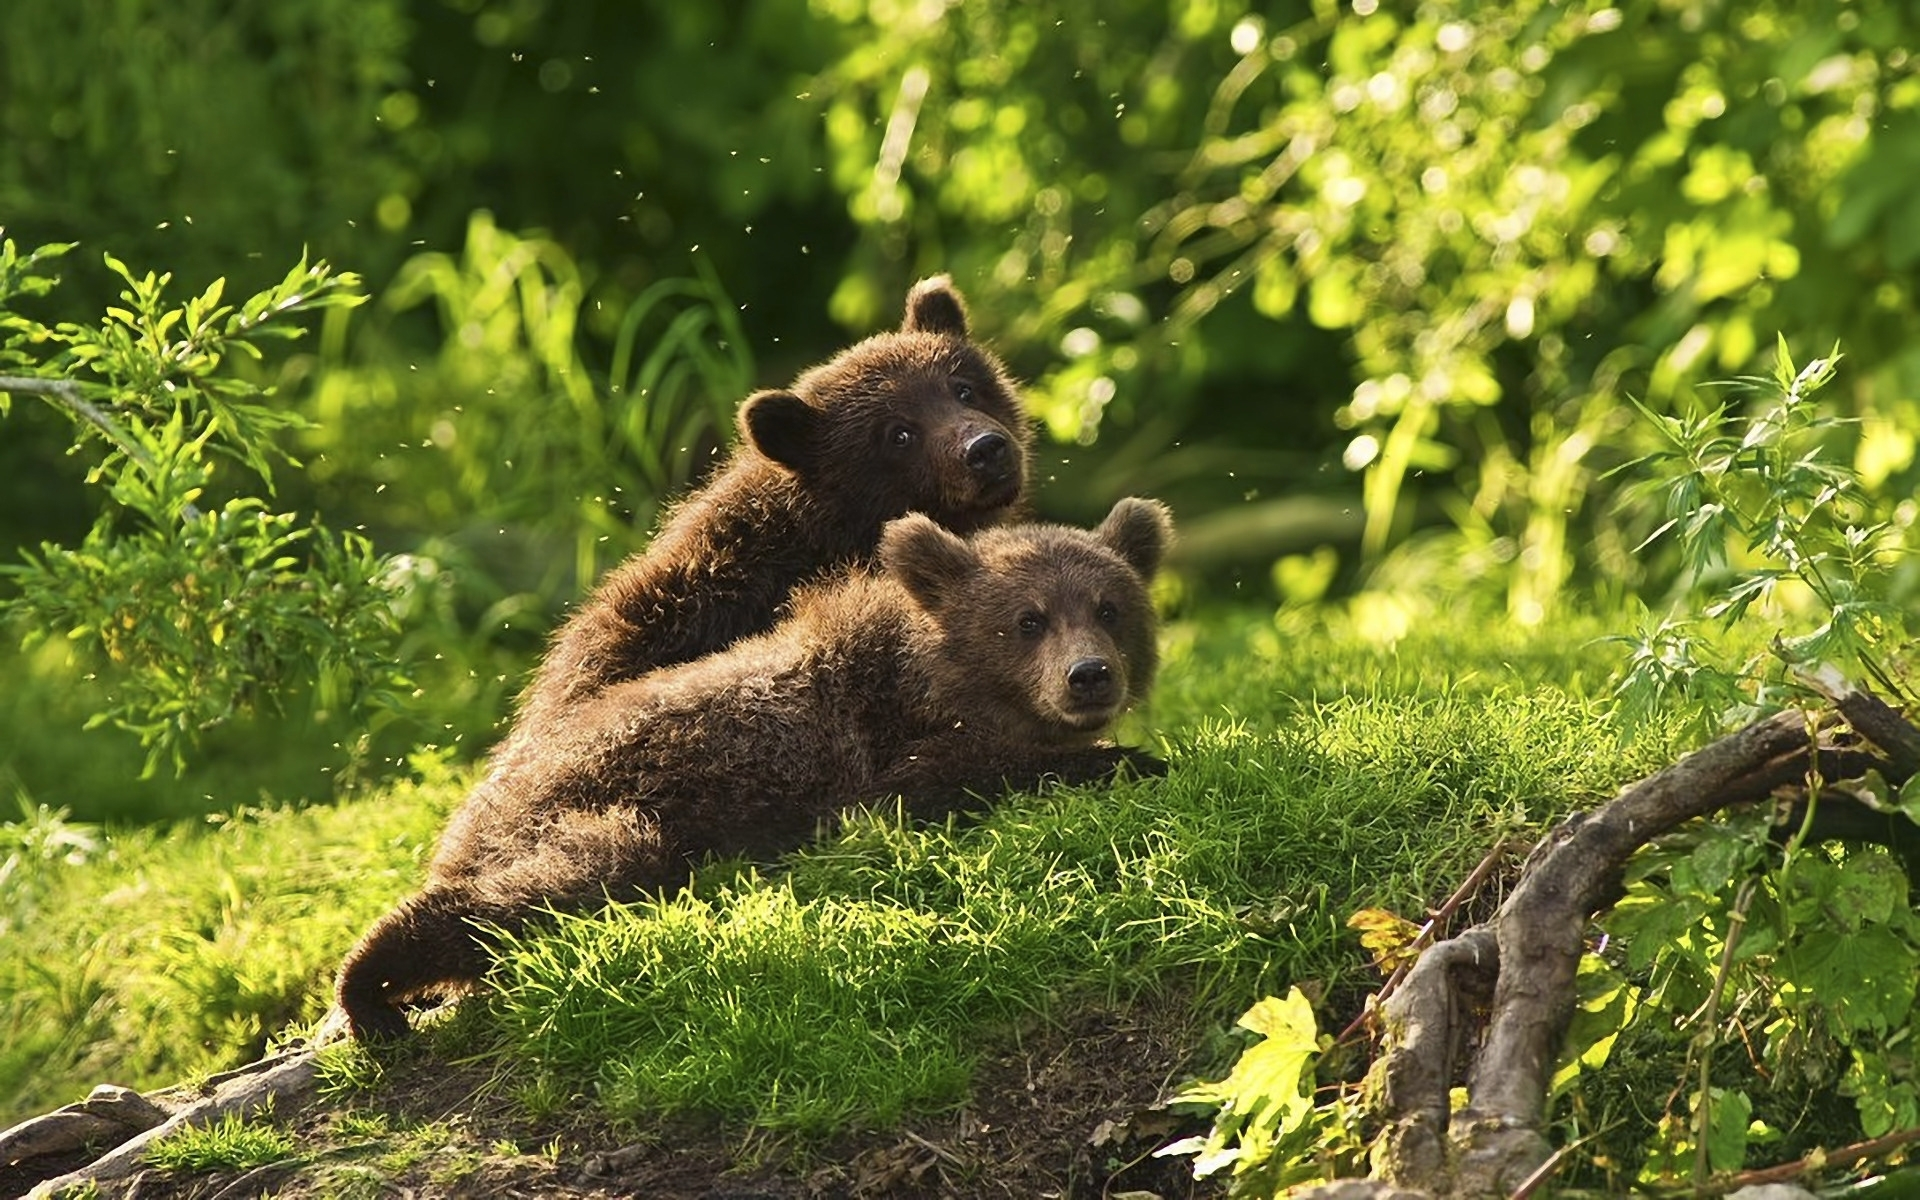 30148 download wallpaper Animals, Bears screensavers and pictures for free